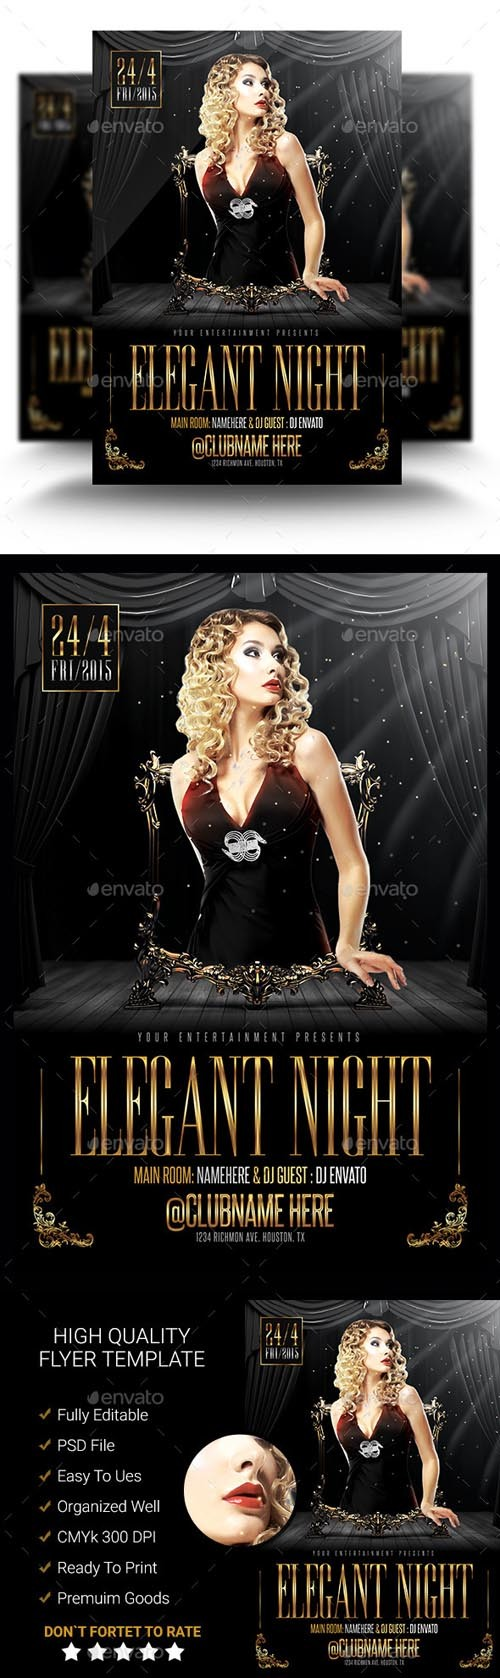 Flyer Template PSD - Elegant Night 02